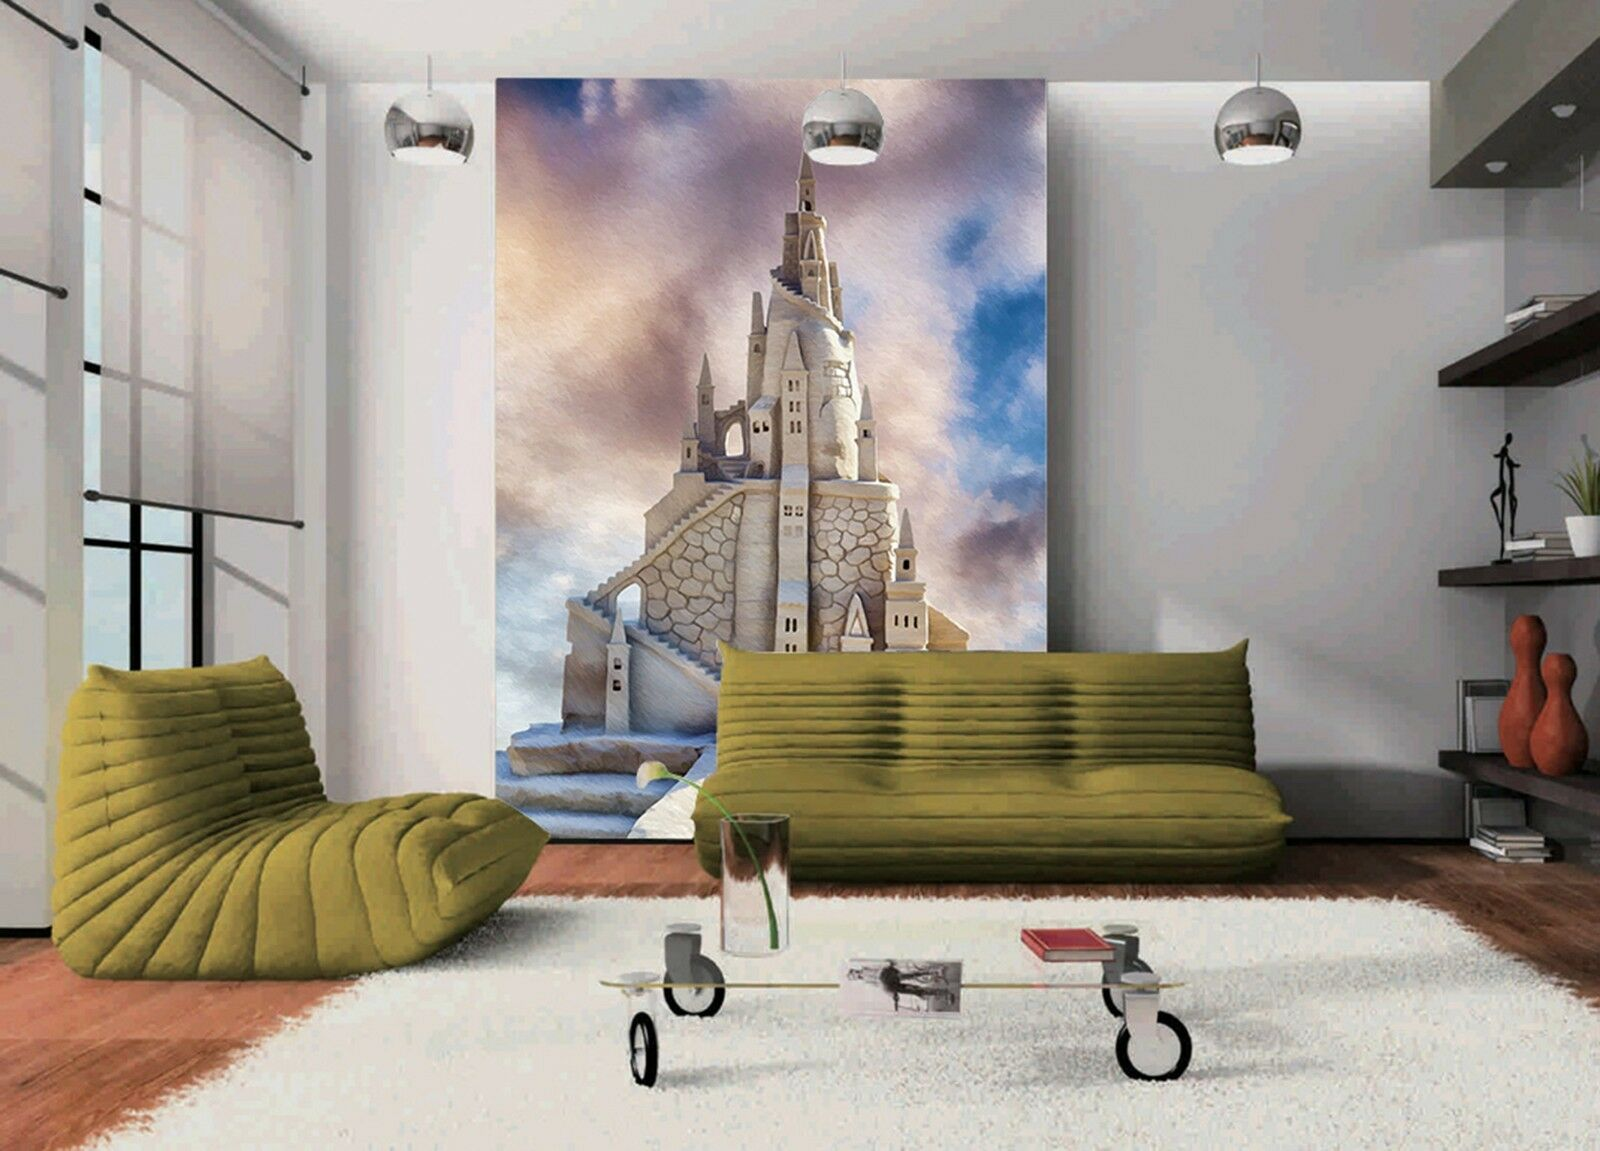 3D Weiß castle buildin Wall Paper wall Print Decal Wall Deco Indoor wall Mural